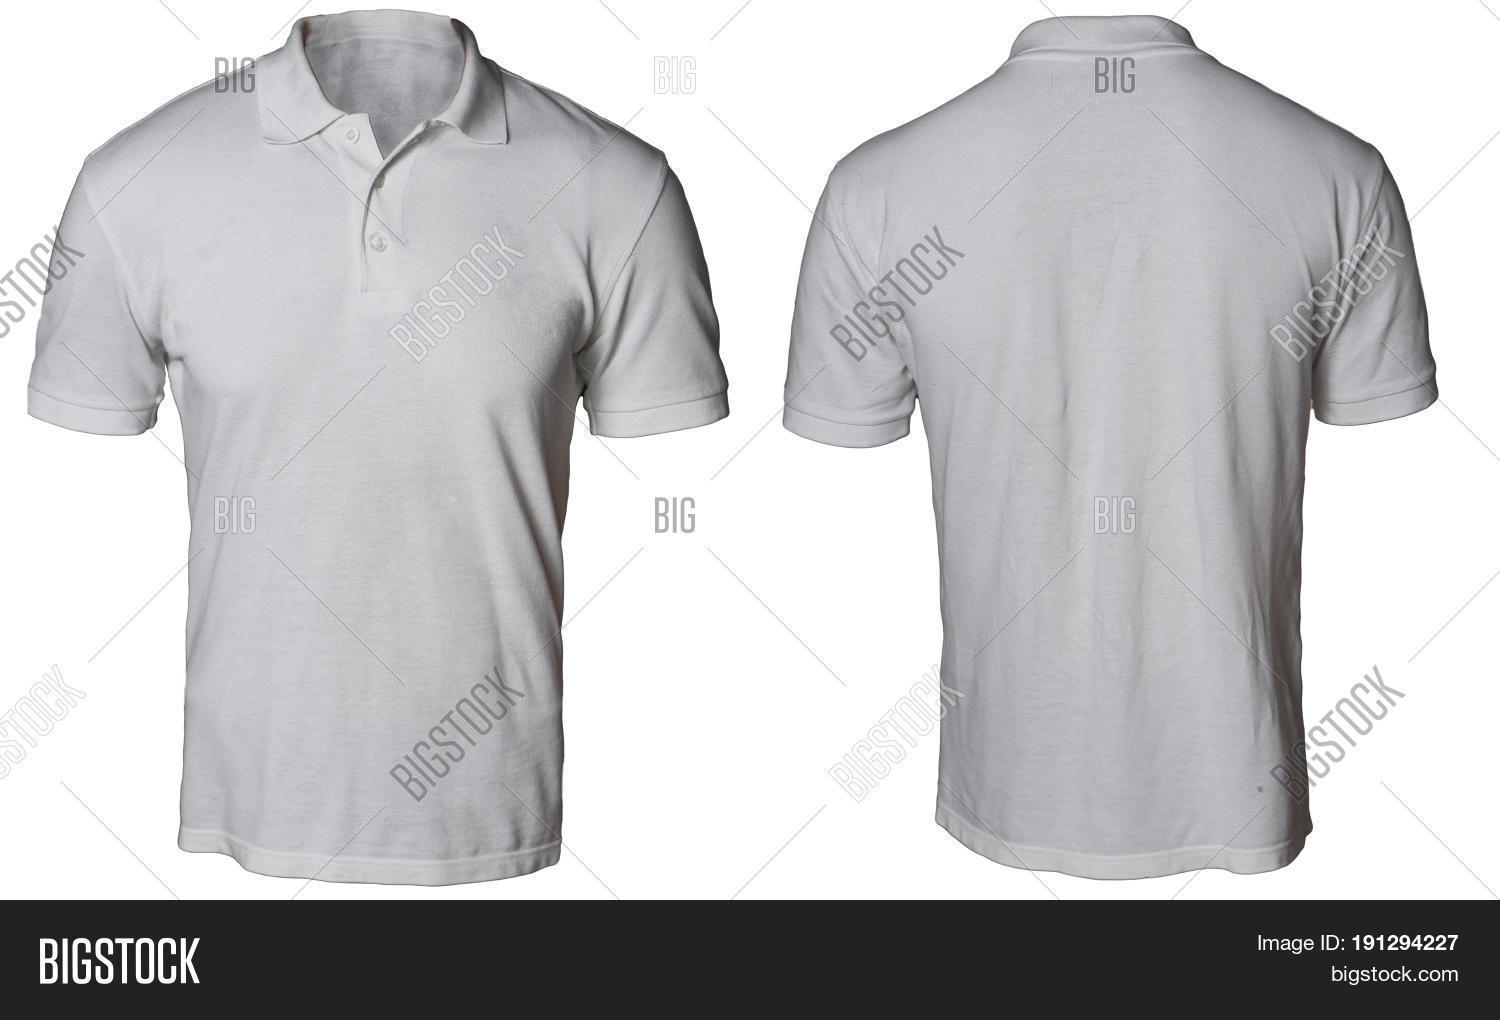 T shirt plain white front and back - Blank Polo Shirt Mock Up Template Front And Back View Isolated On White Plain Gray T